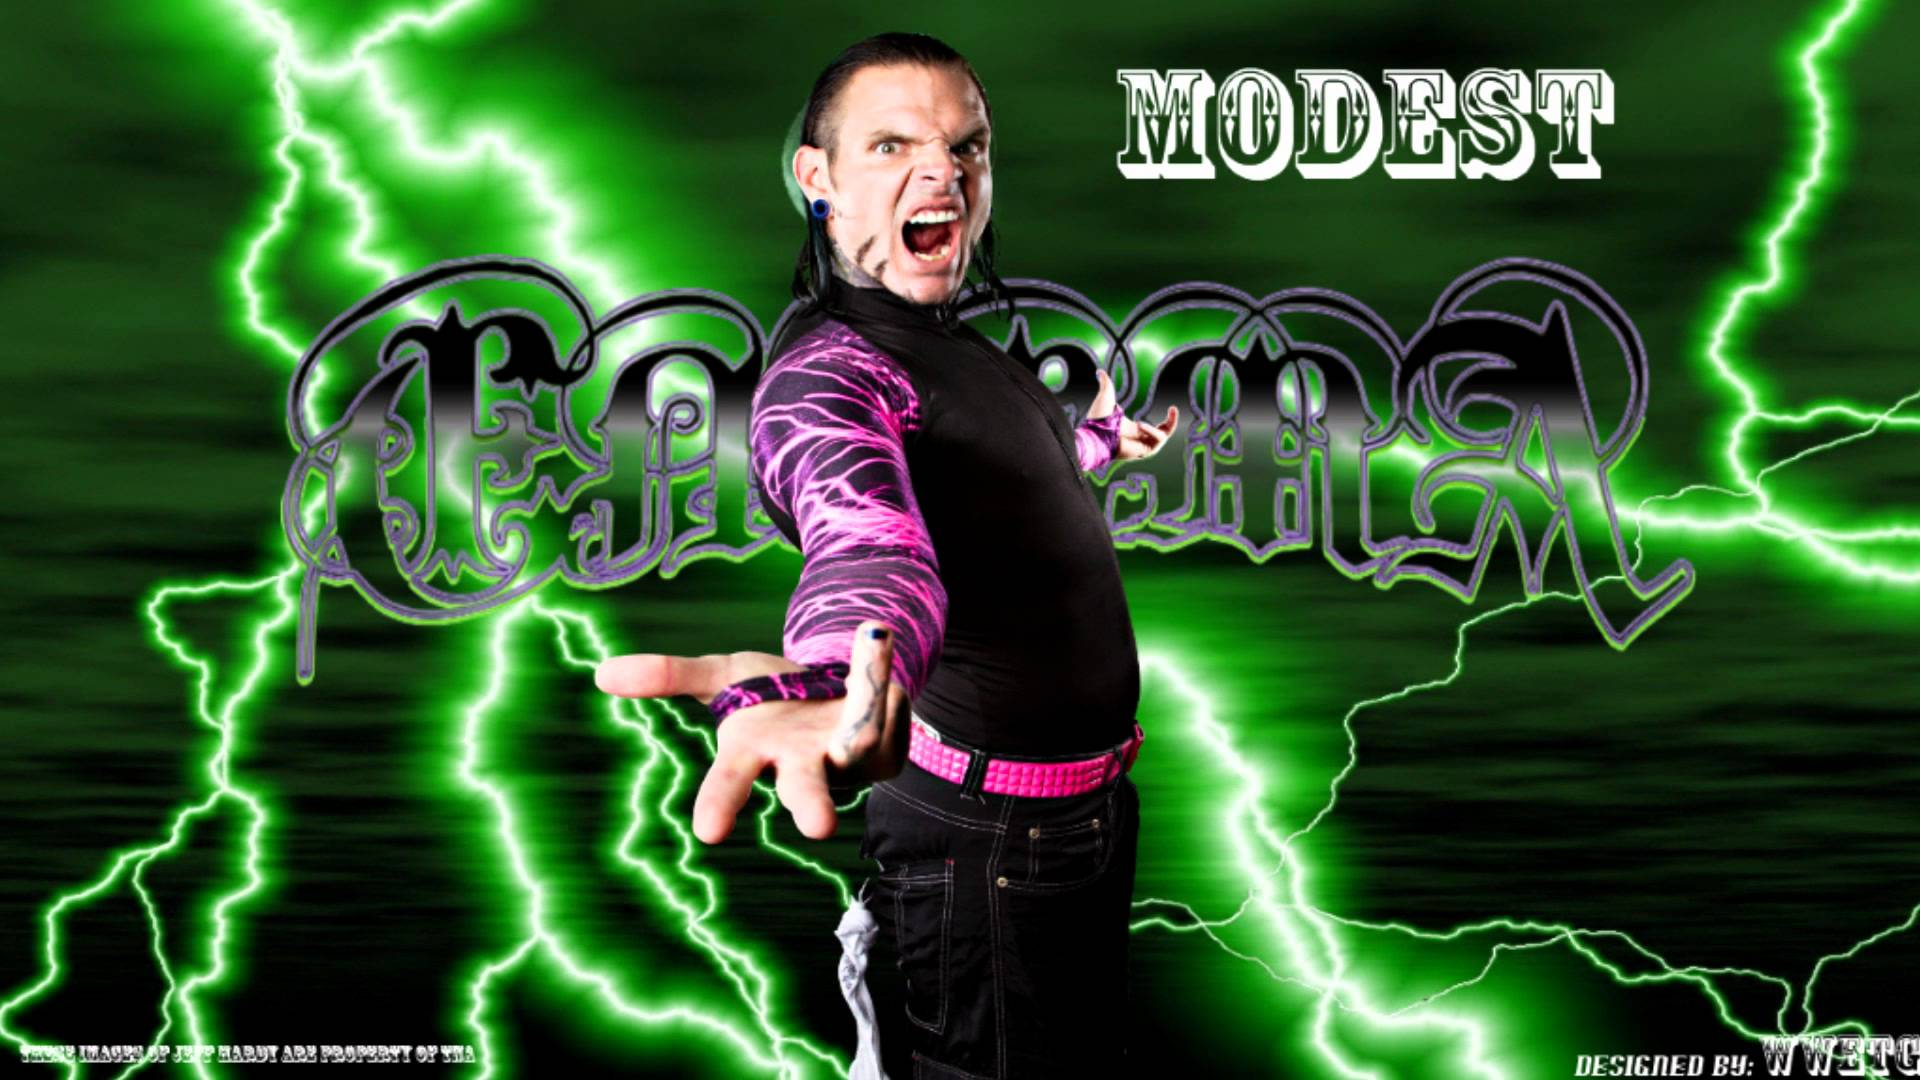 Jeff Hardy 7th Theme Song 'Modest' + DL Link for Song and